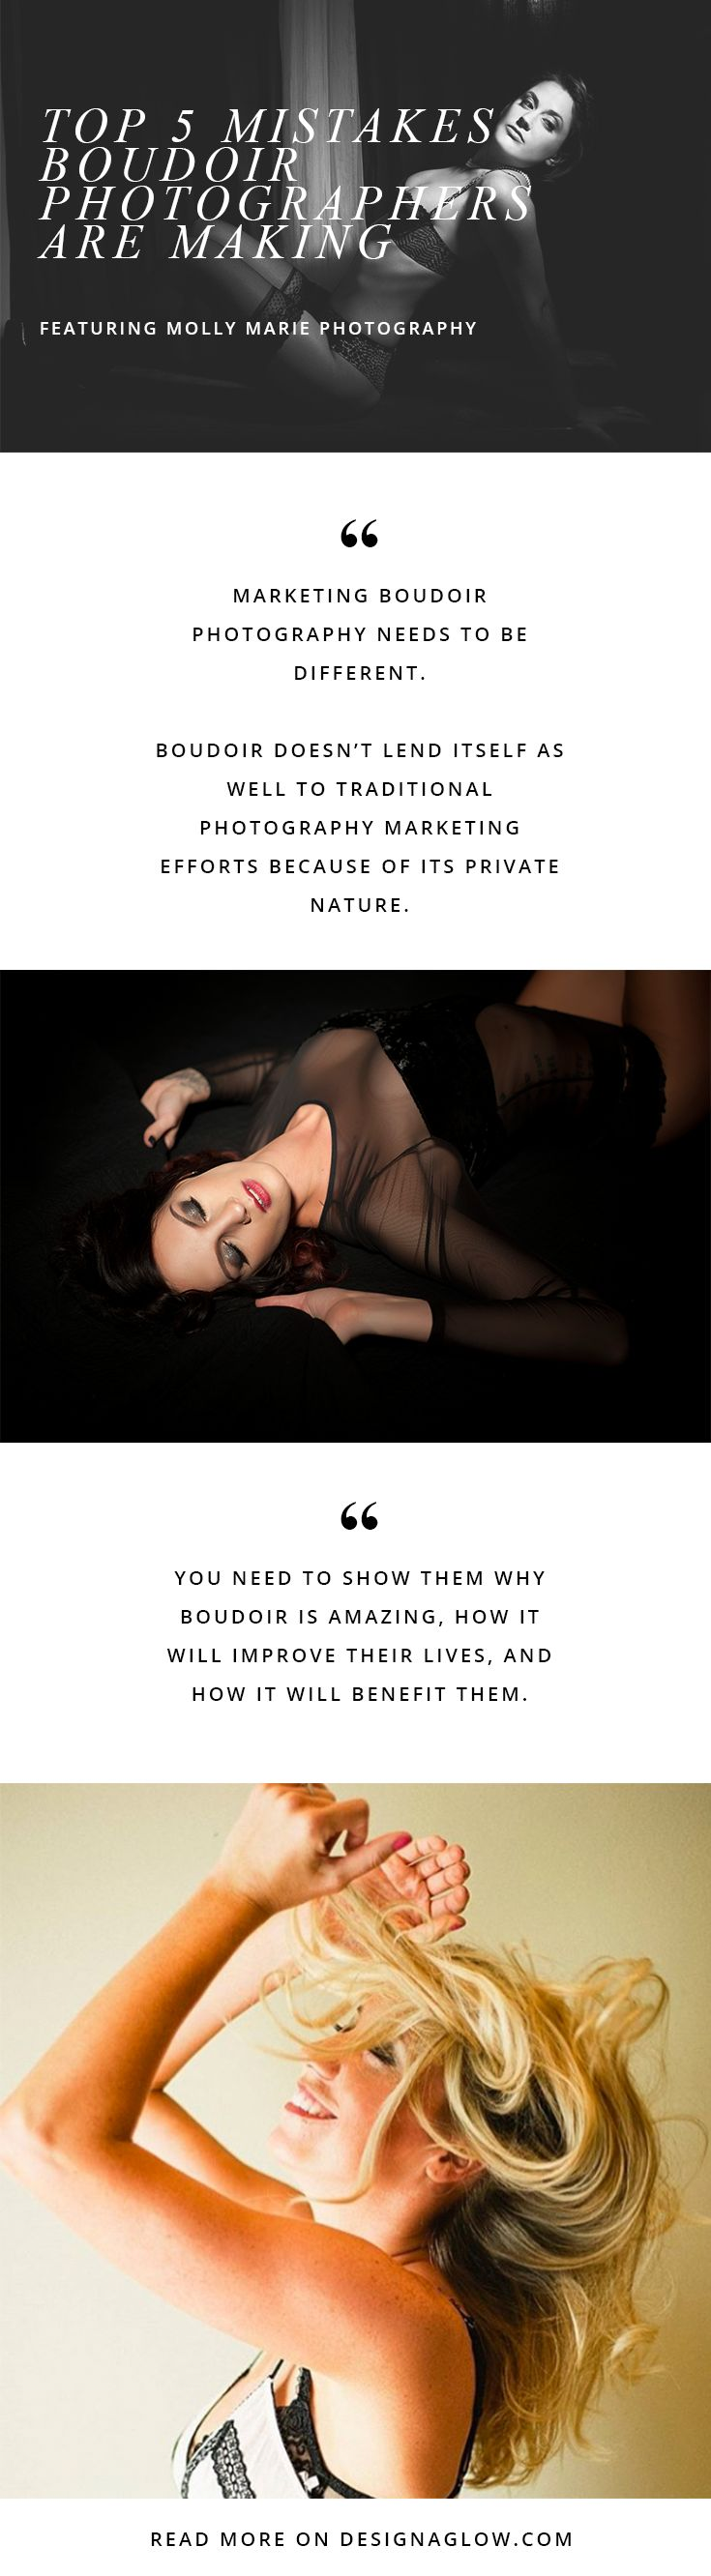 Essential marketing tips for any boudoir photographer.